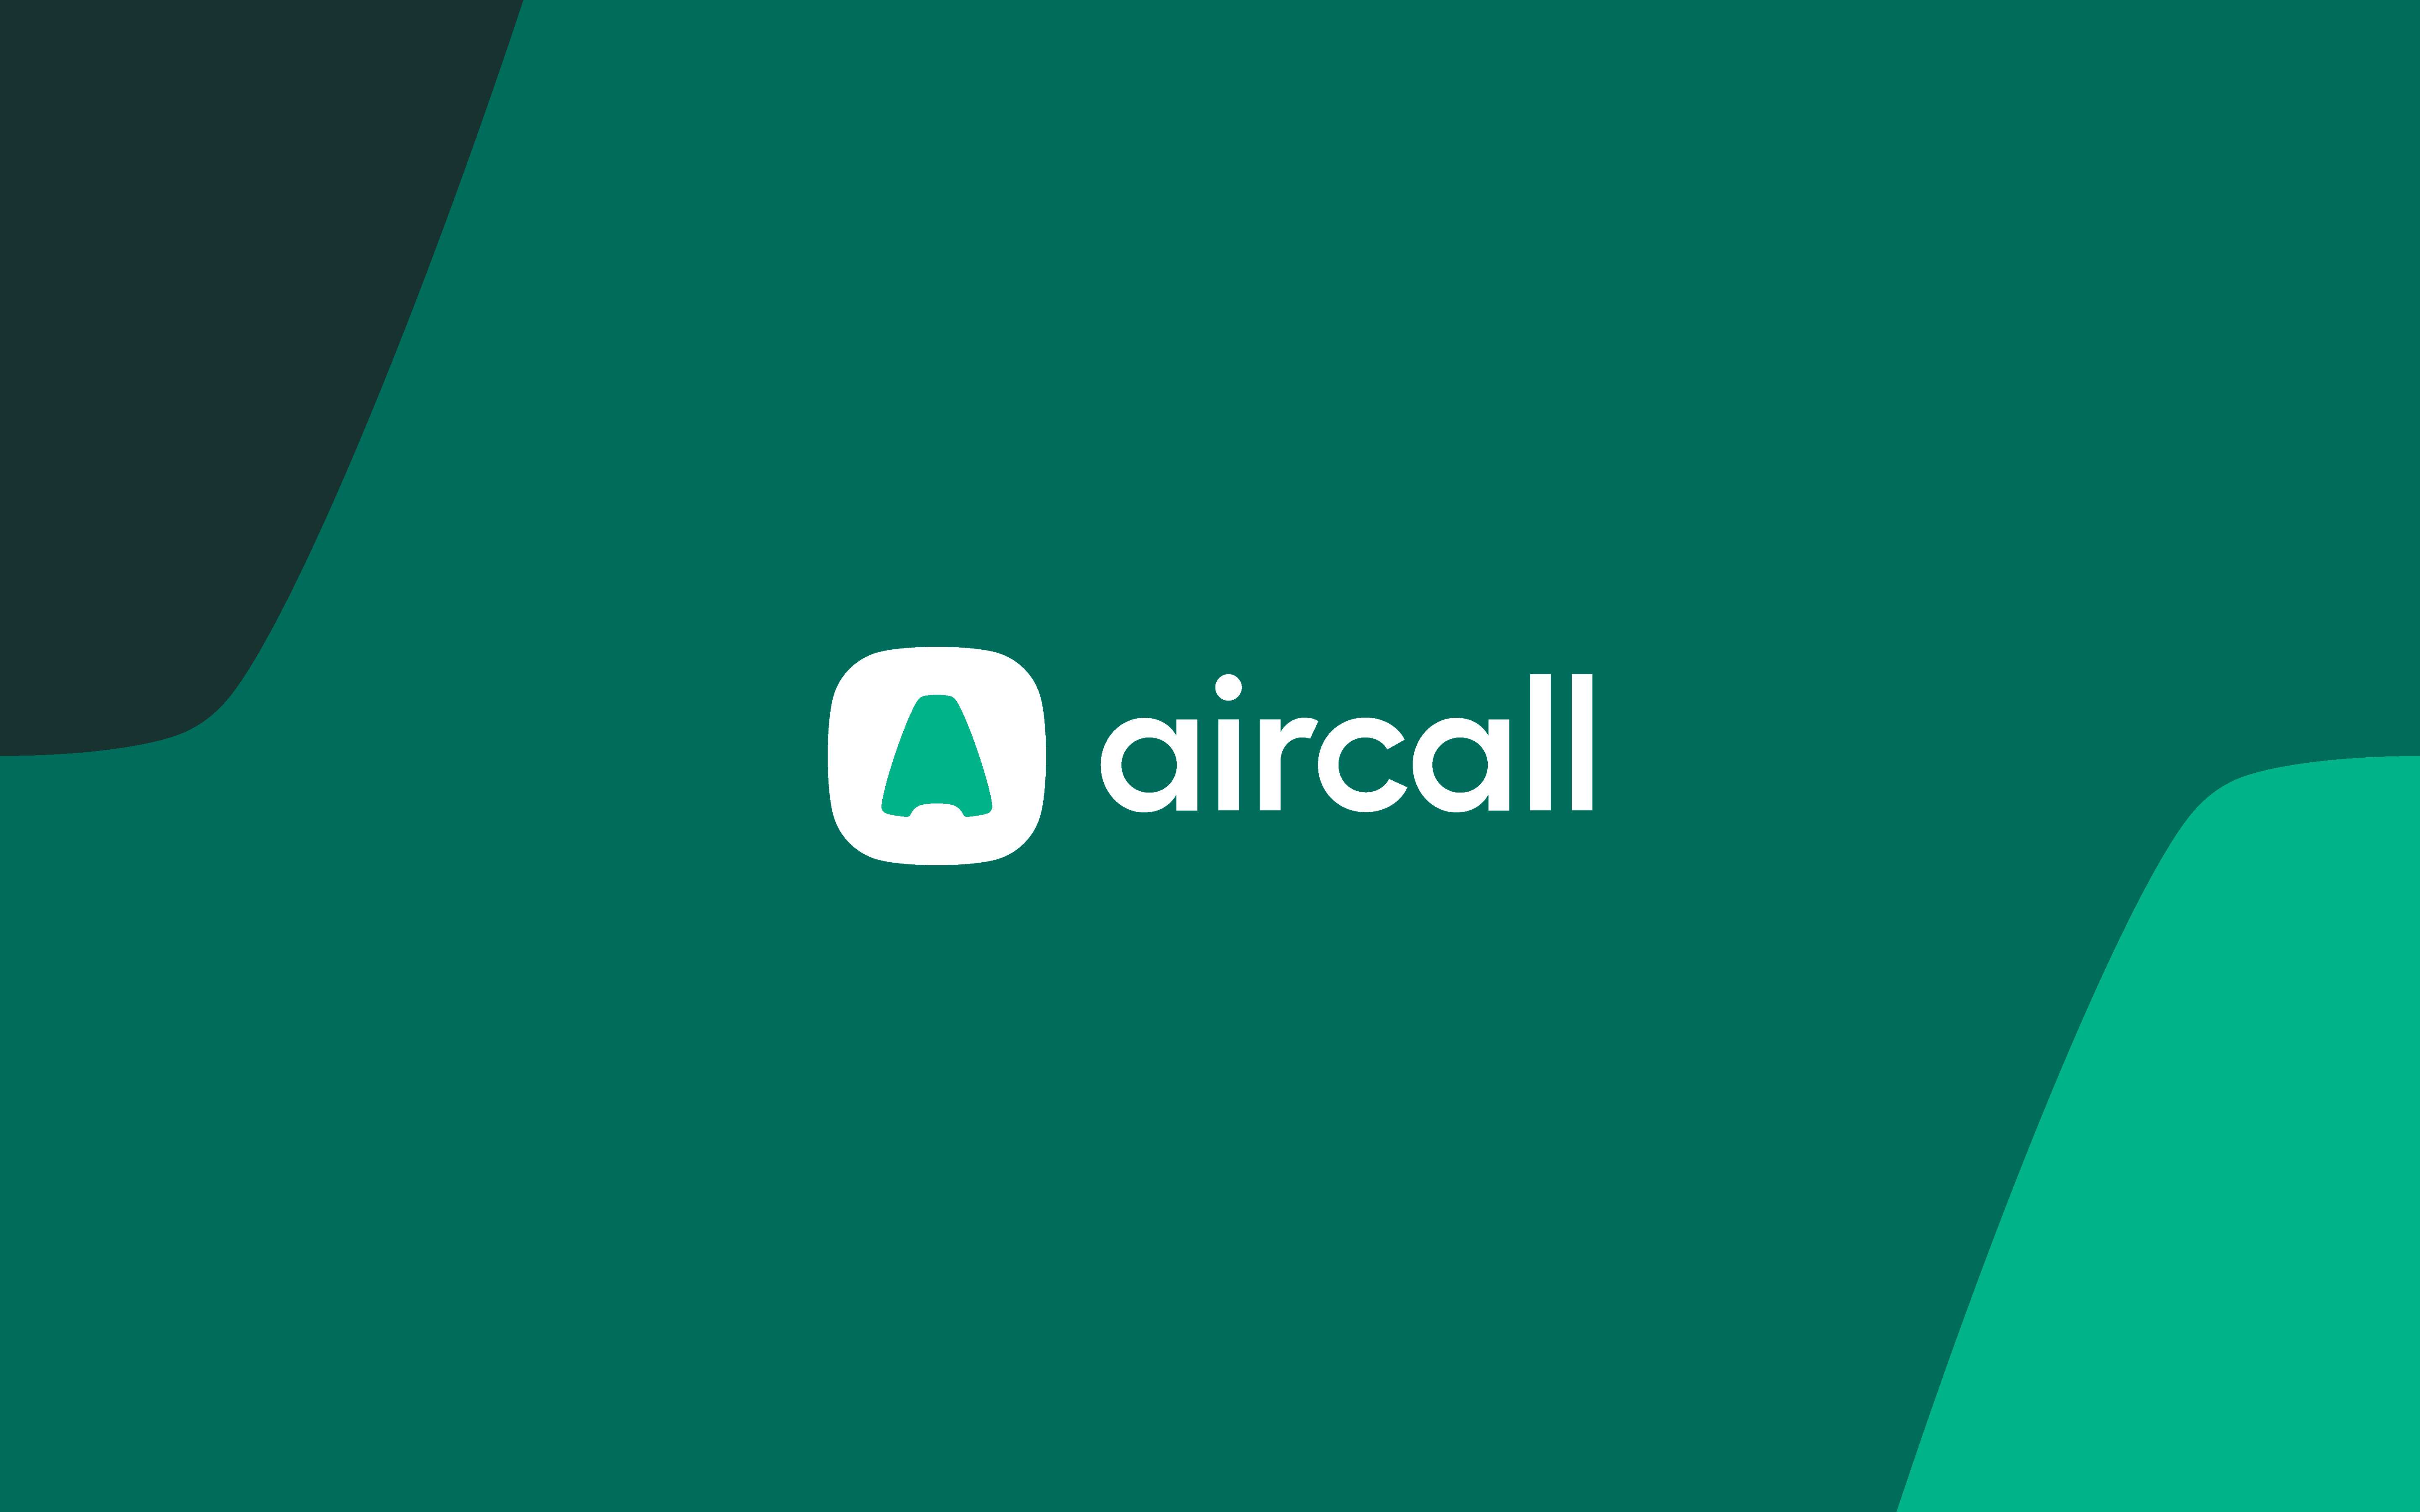 Aircall Brand Update